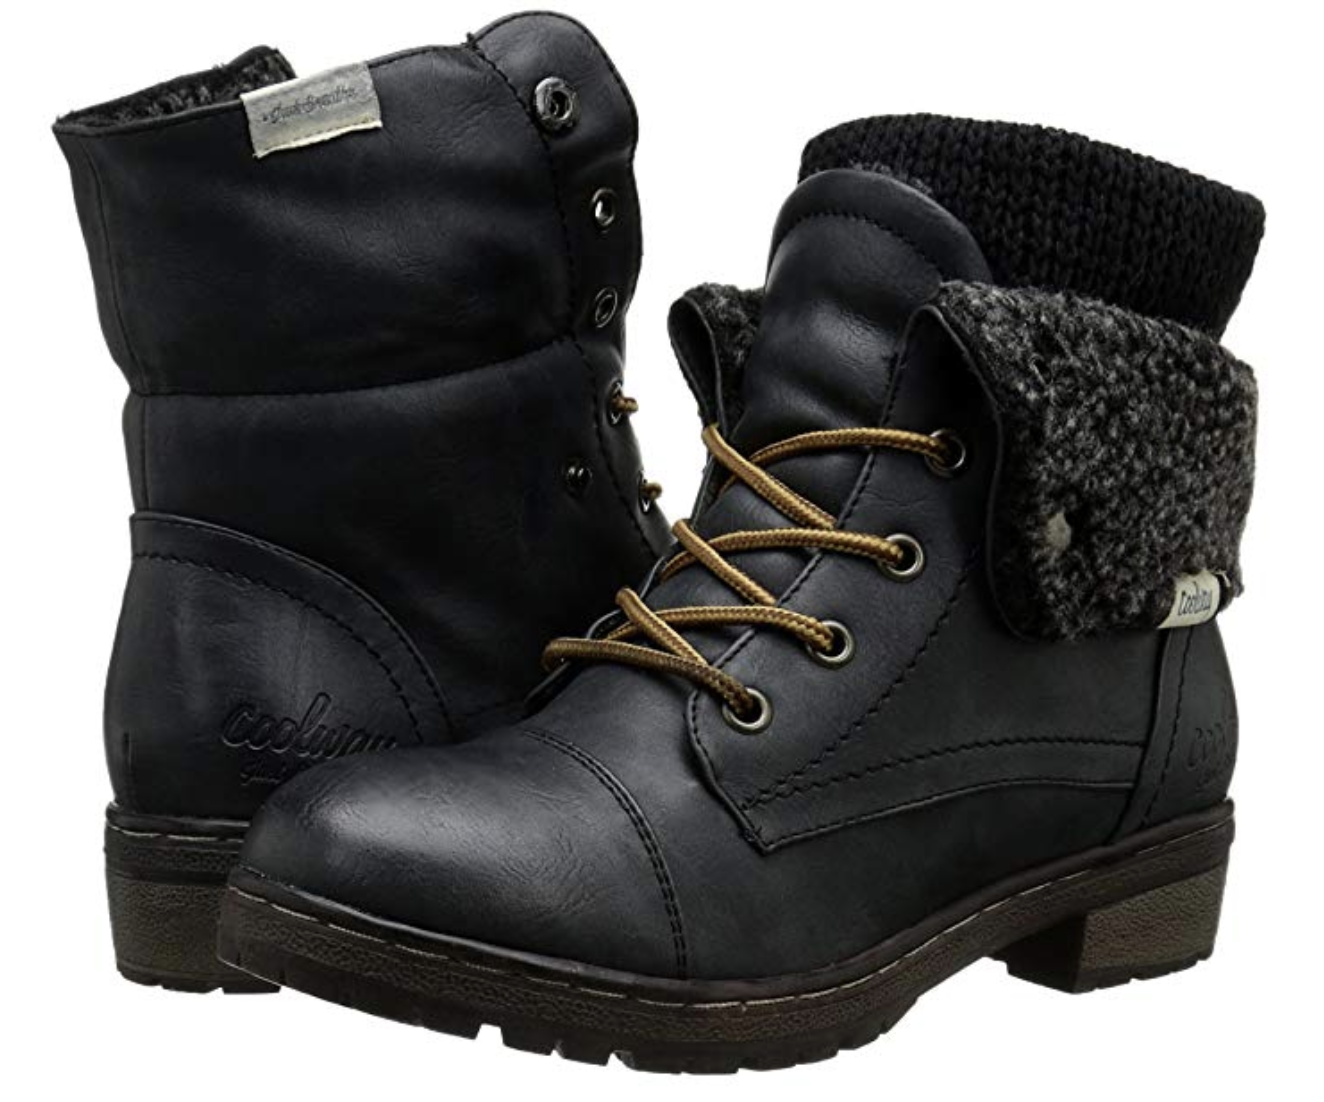 Black lace-up boots with a foldable flap that shows a shearling inside and knit second layer